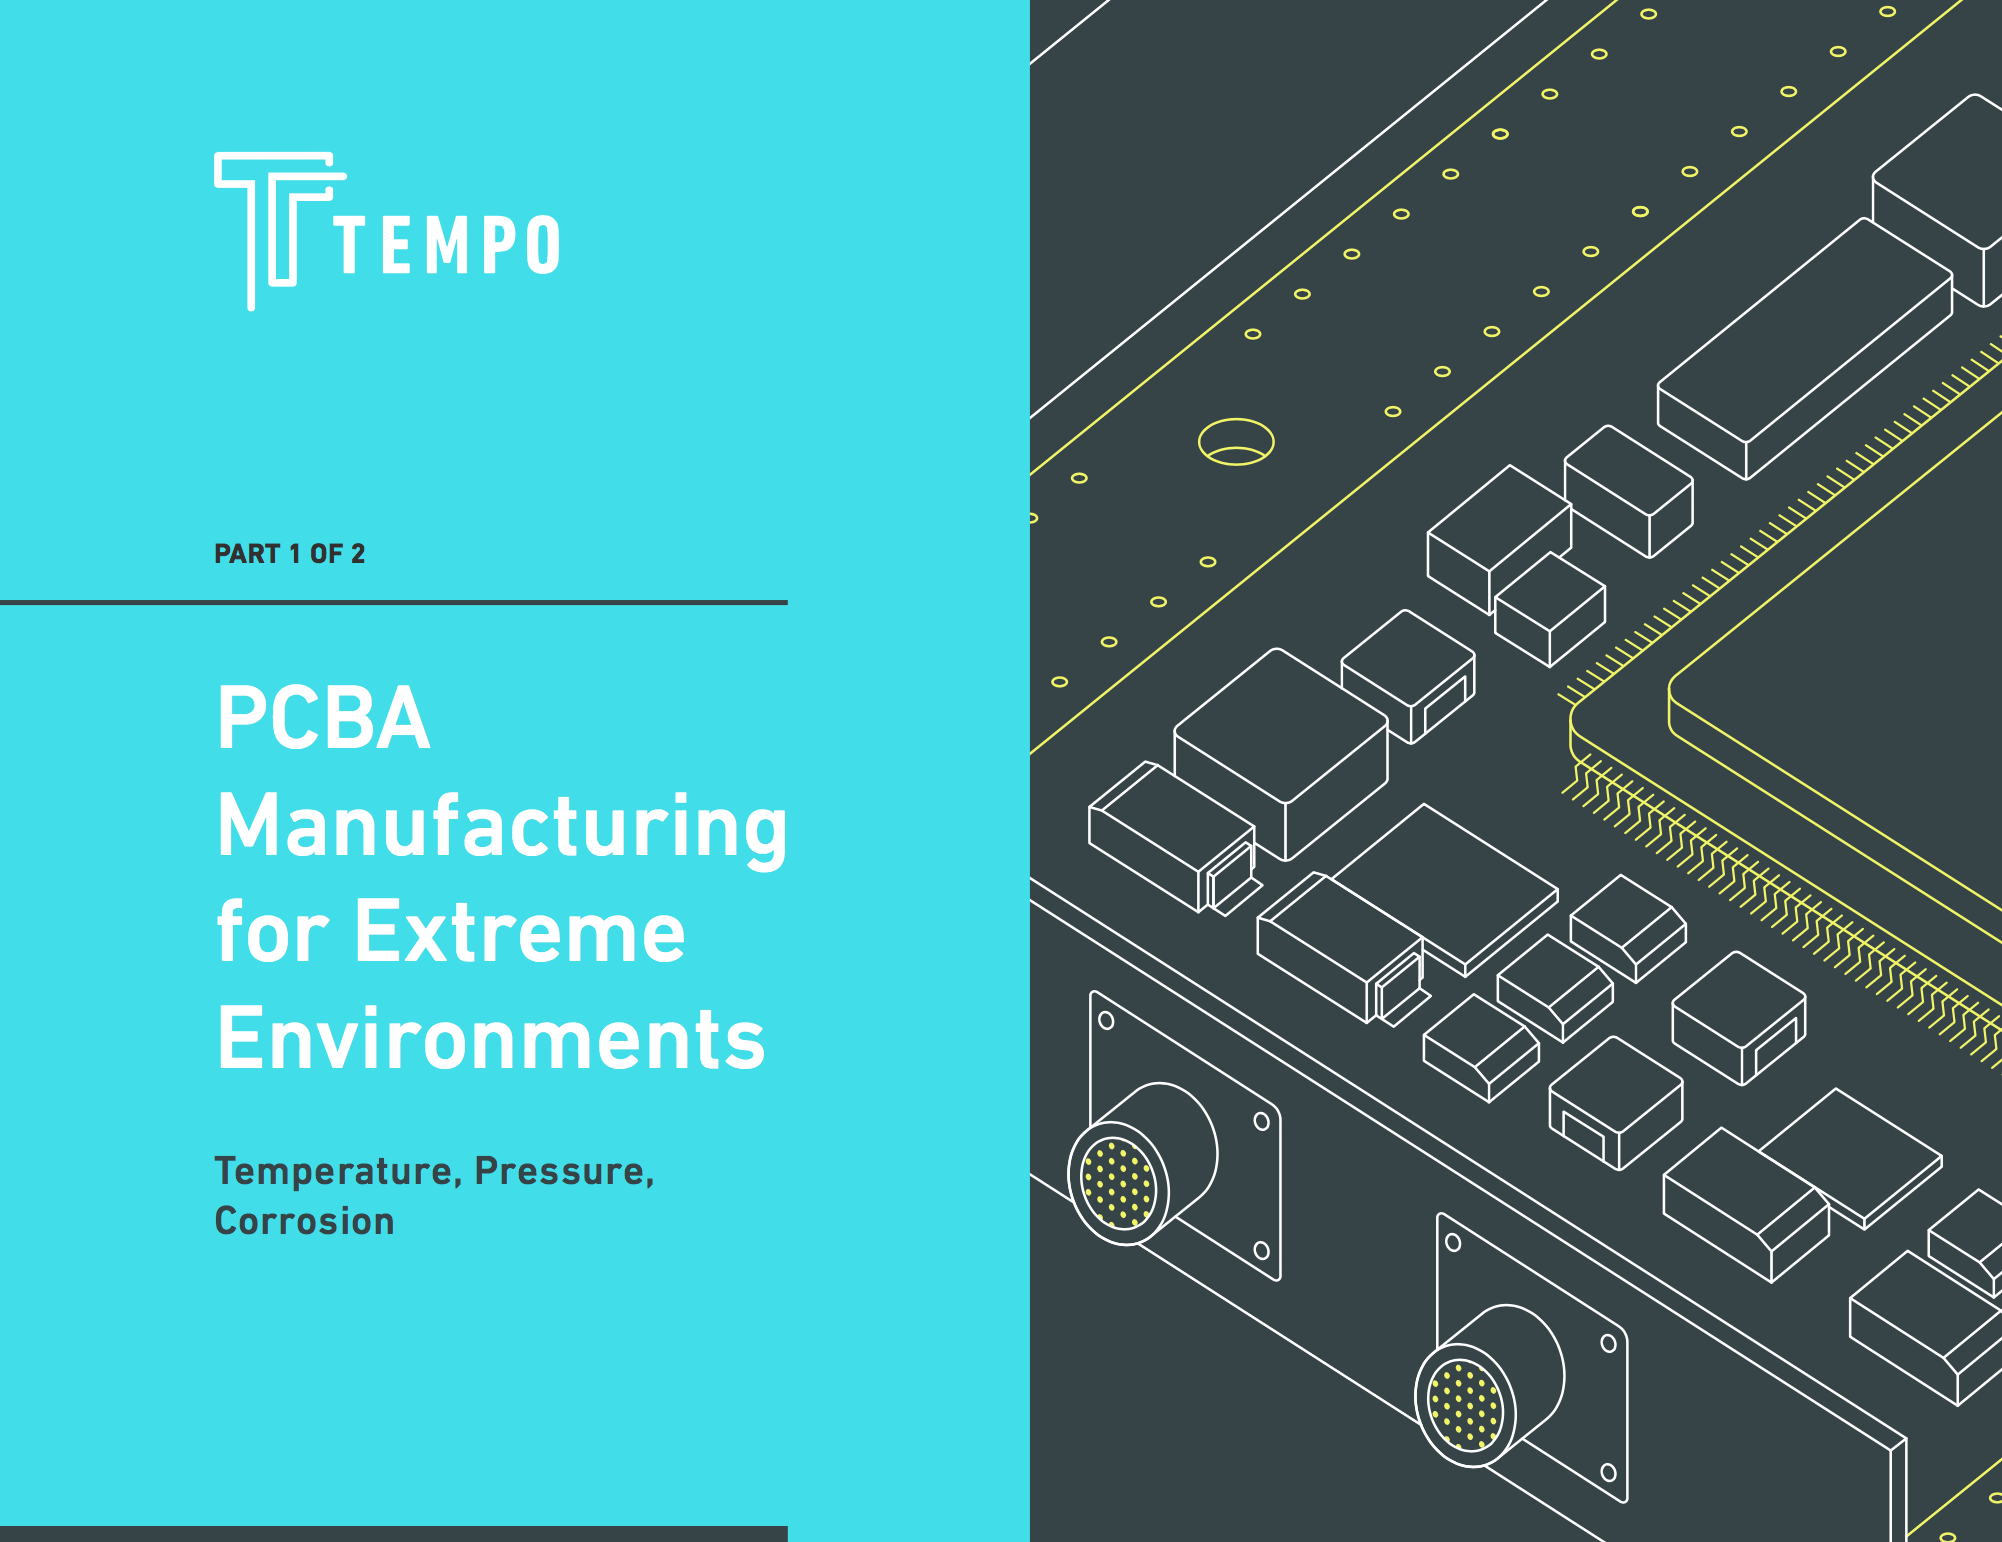 eBook-PCBA-Manufacturing-Extreme-Environments-Part-1_Cover-Image